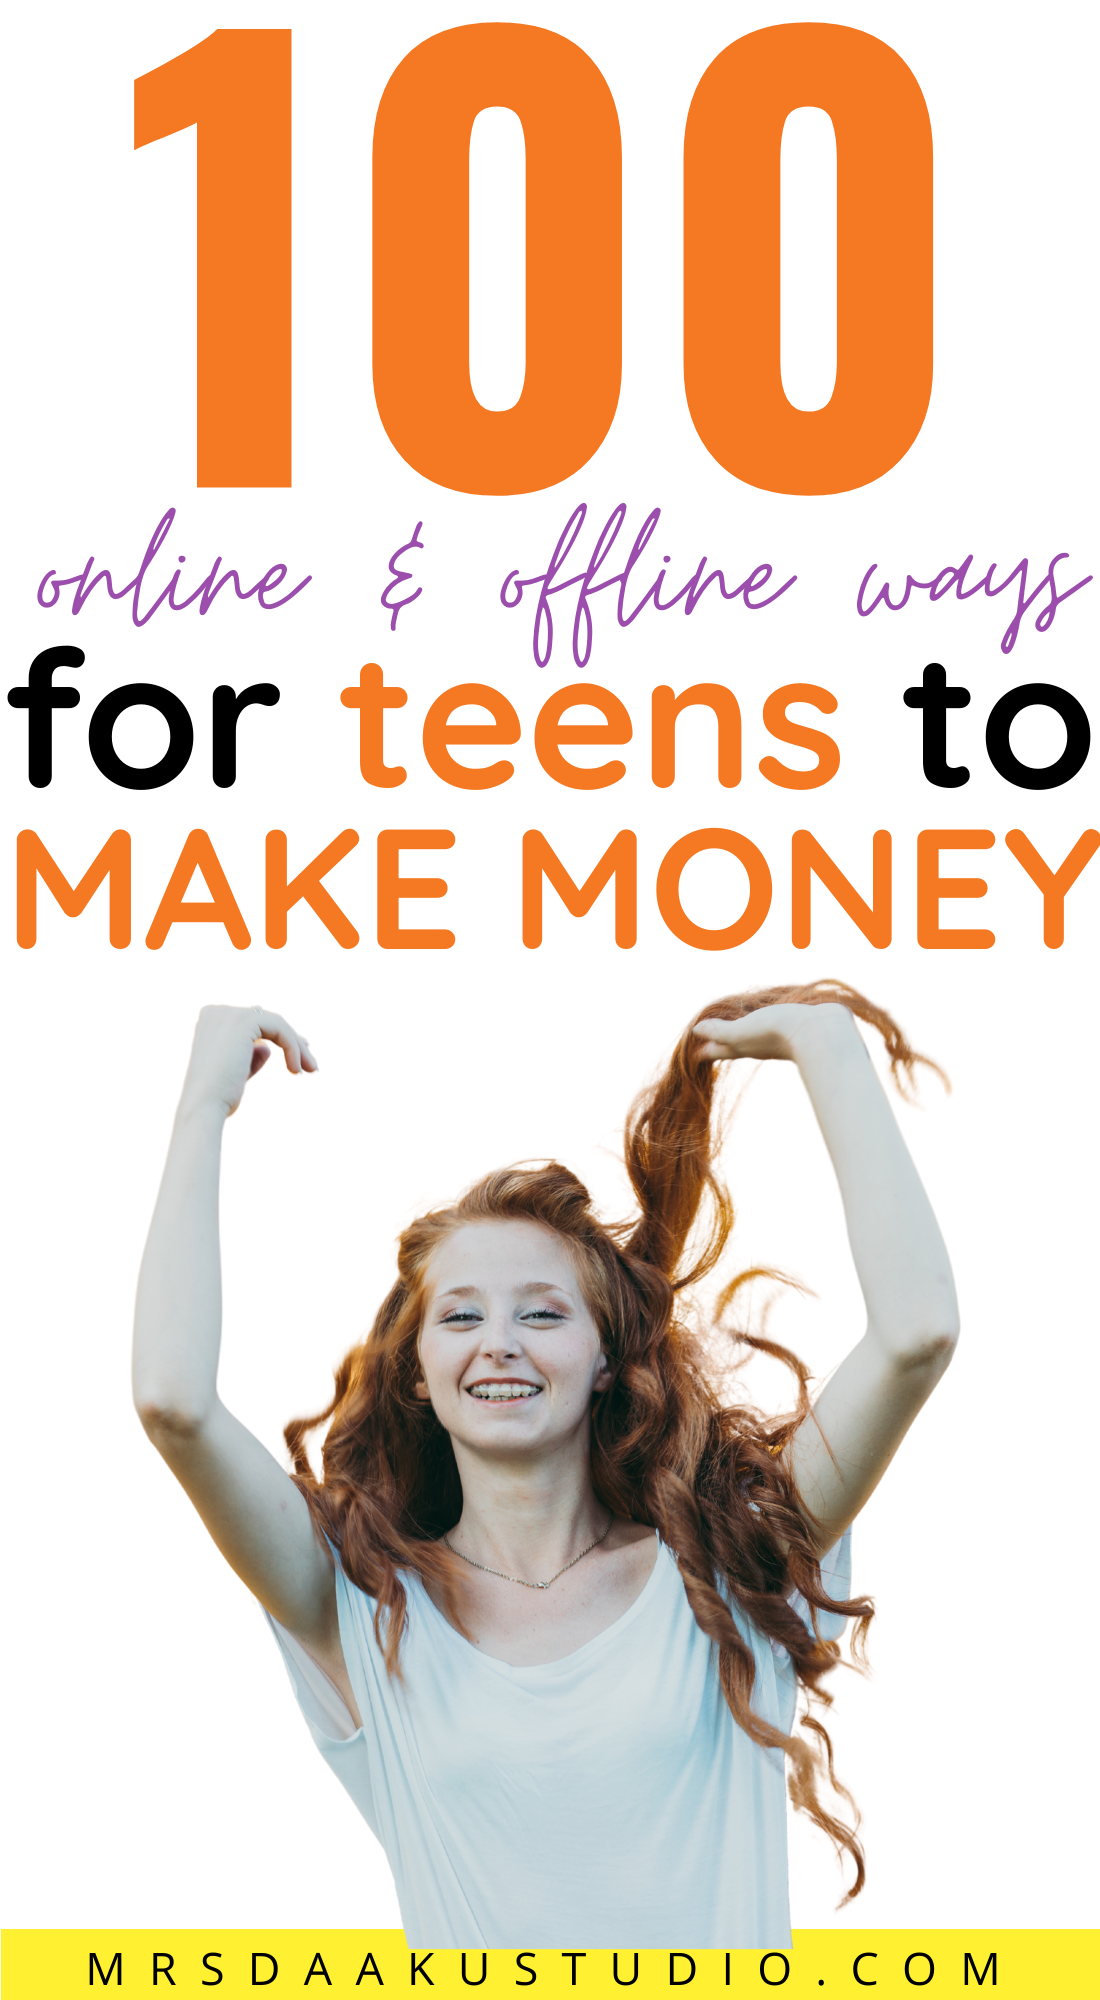 HOW TO MAKE MONEY AS A TEENAGER (earn $1000+/mo)